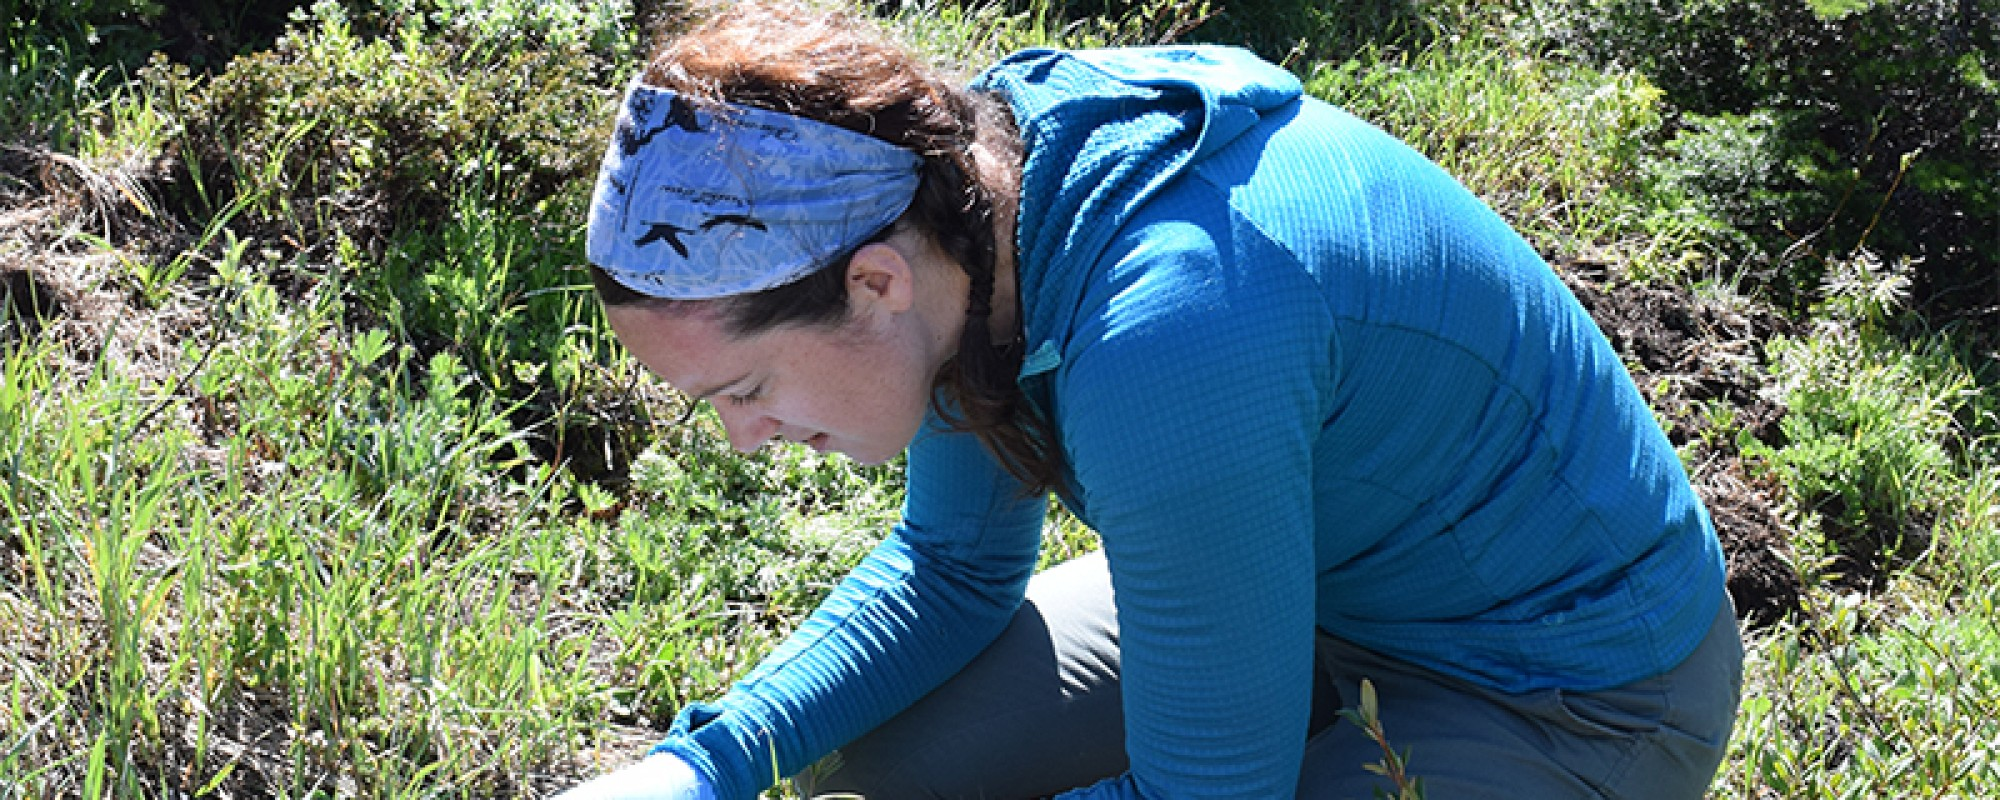 Laura Finnegan collecting tissue samples from a deceased caribou.